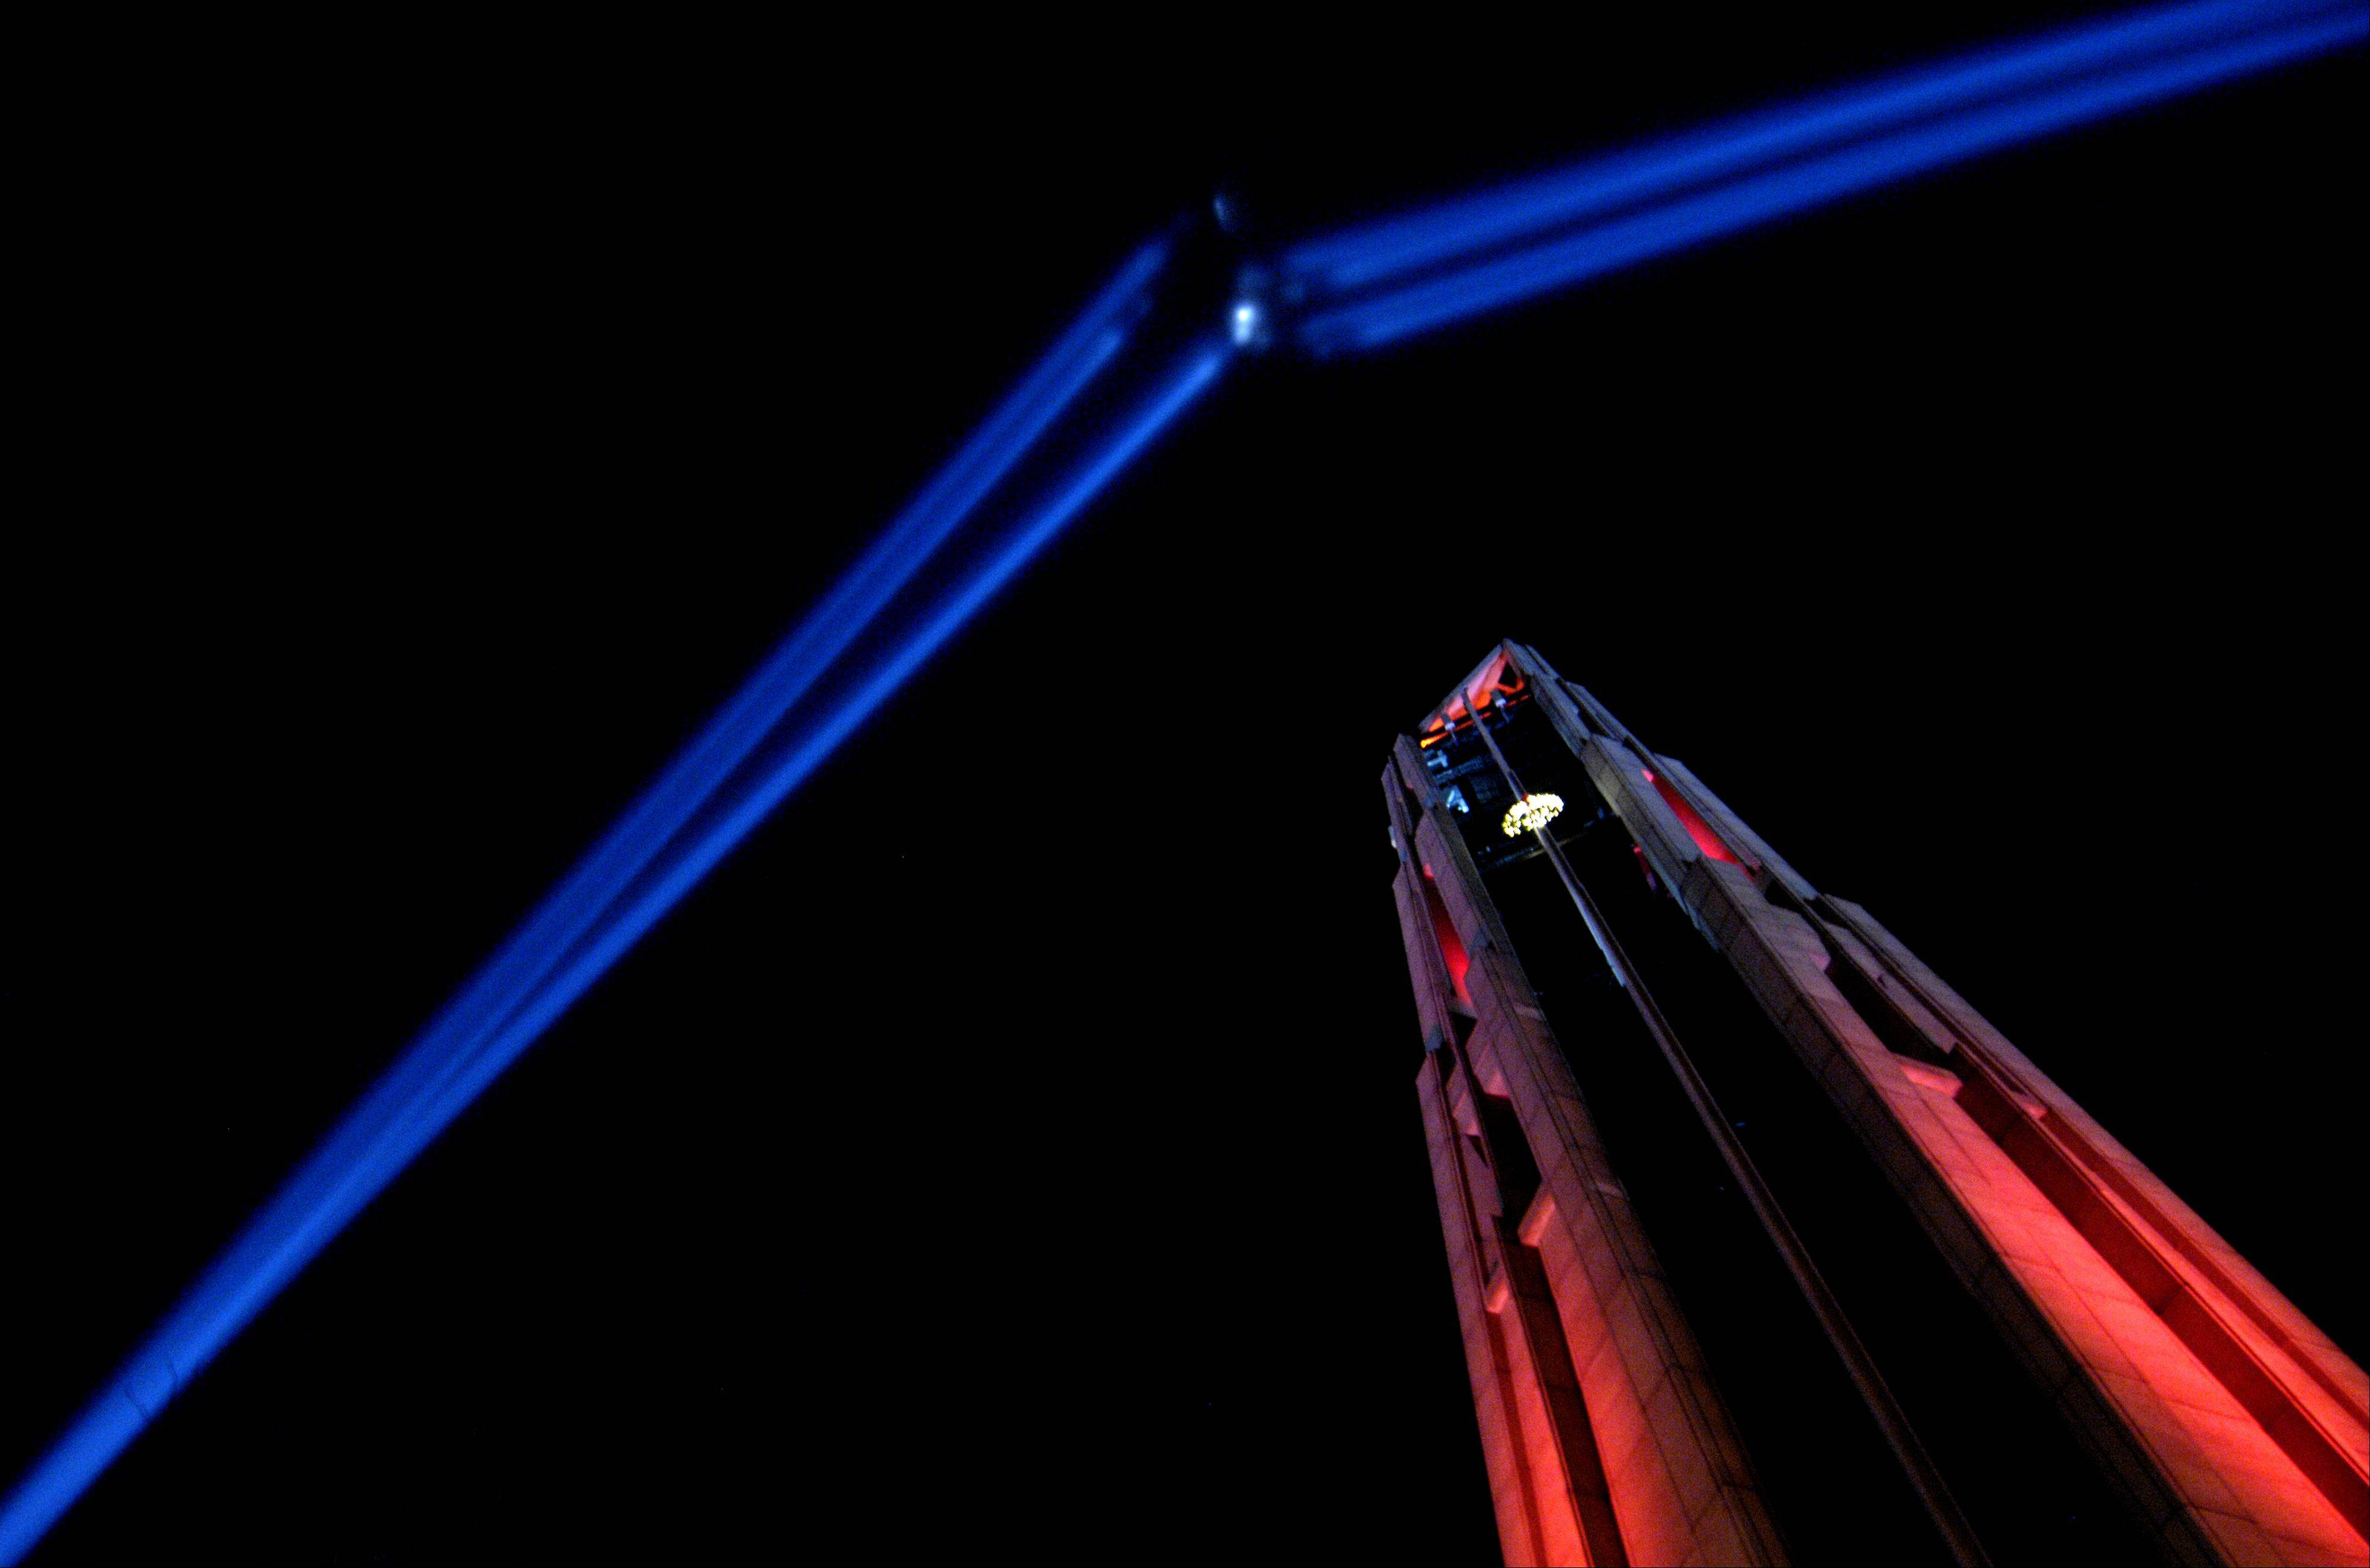 I was drawn to make this image of the colored light show at the Naperville Millennium Carillon on New Year's Eve as soon as I stepped into the park and saw the potential of the scene. I purposely framed the scene so the spotlight beams came from two corners and the Carillon rise out of a third corner. This image was taken hand held with a slow shutter speed.